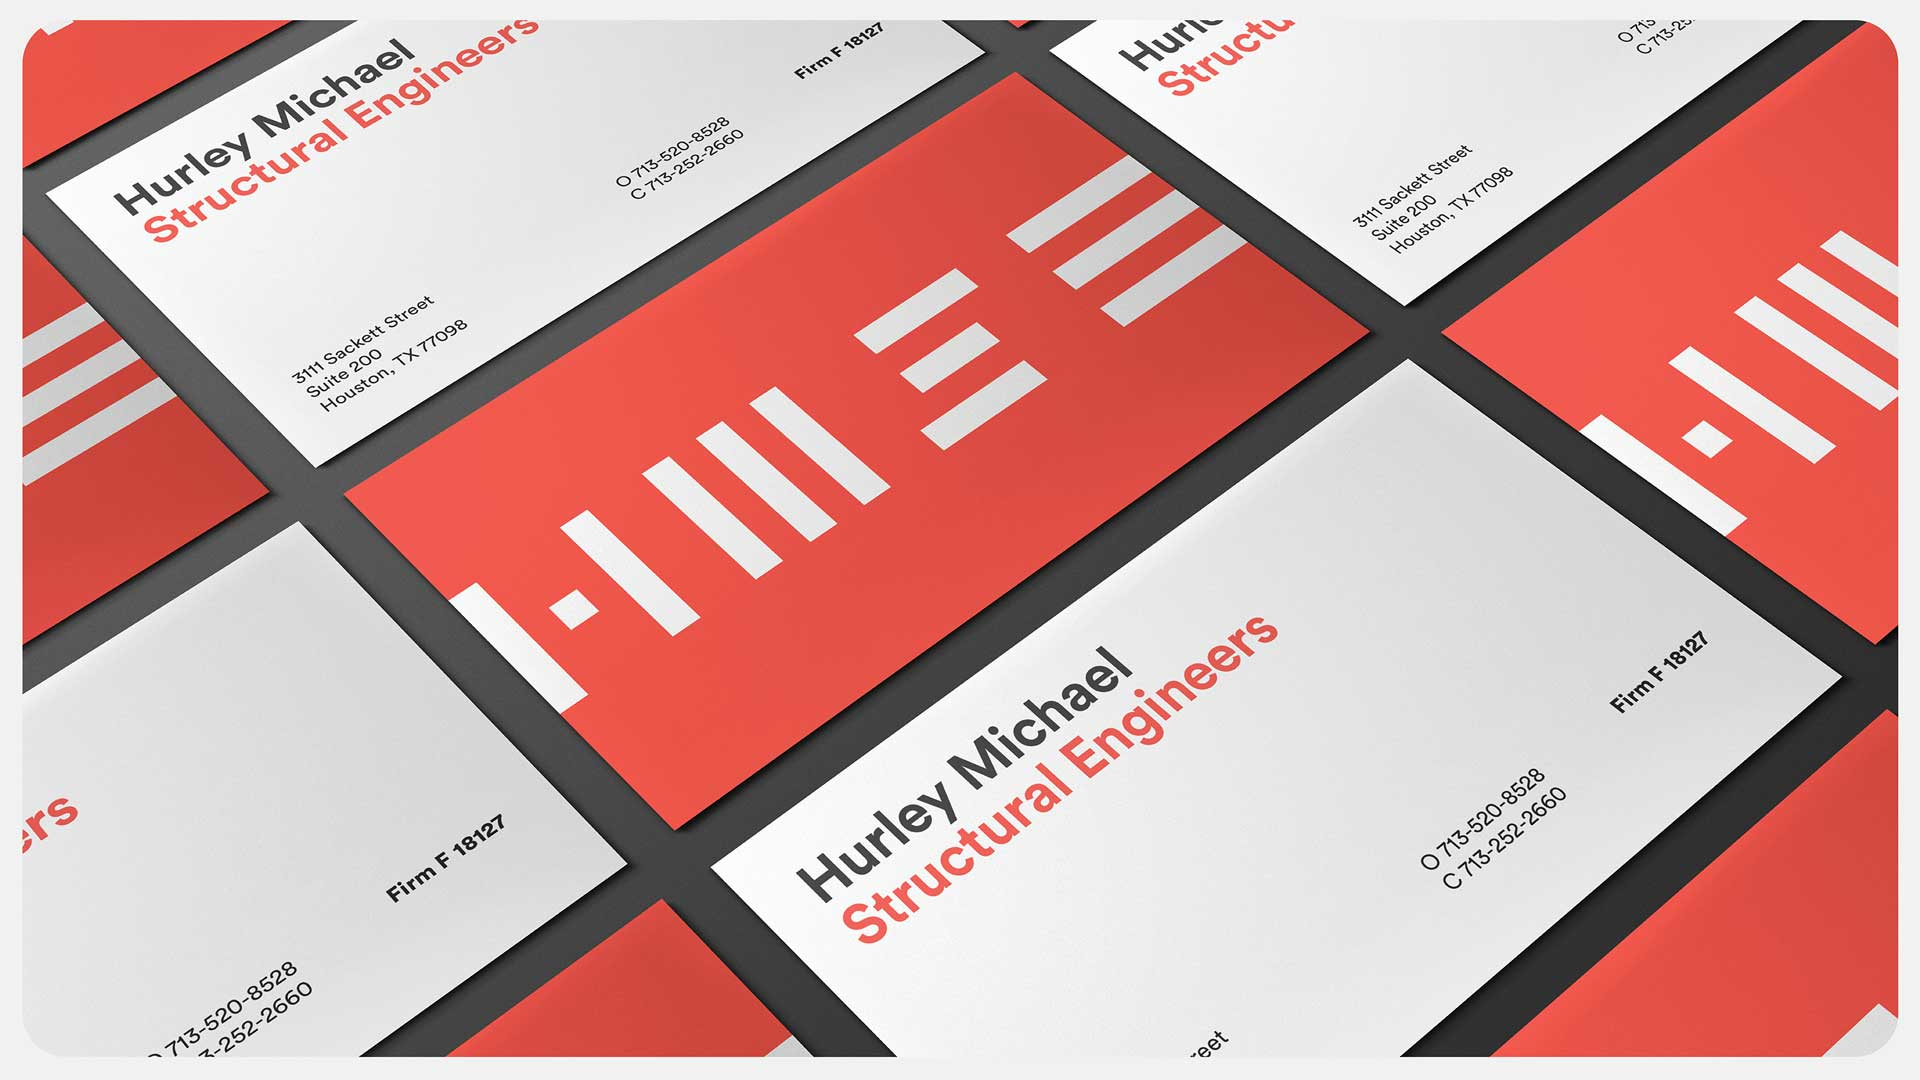 Stationery design for Hurley Michael Structural Engineers